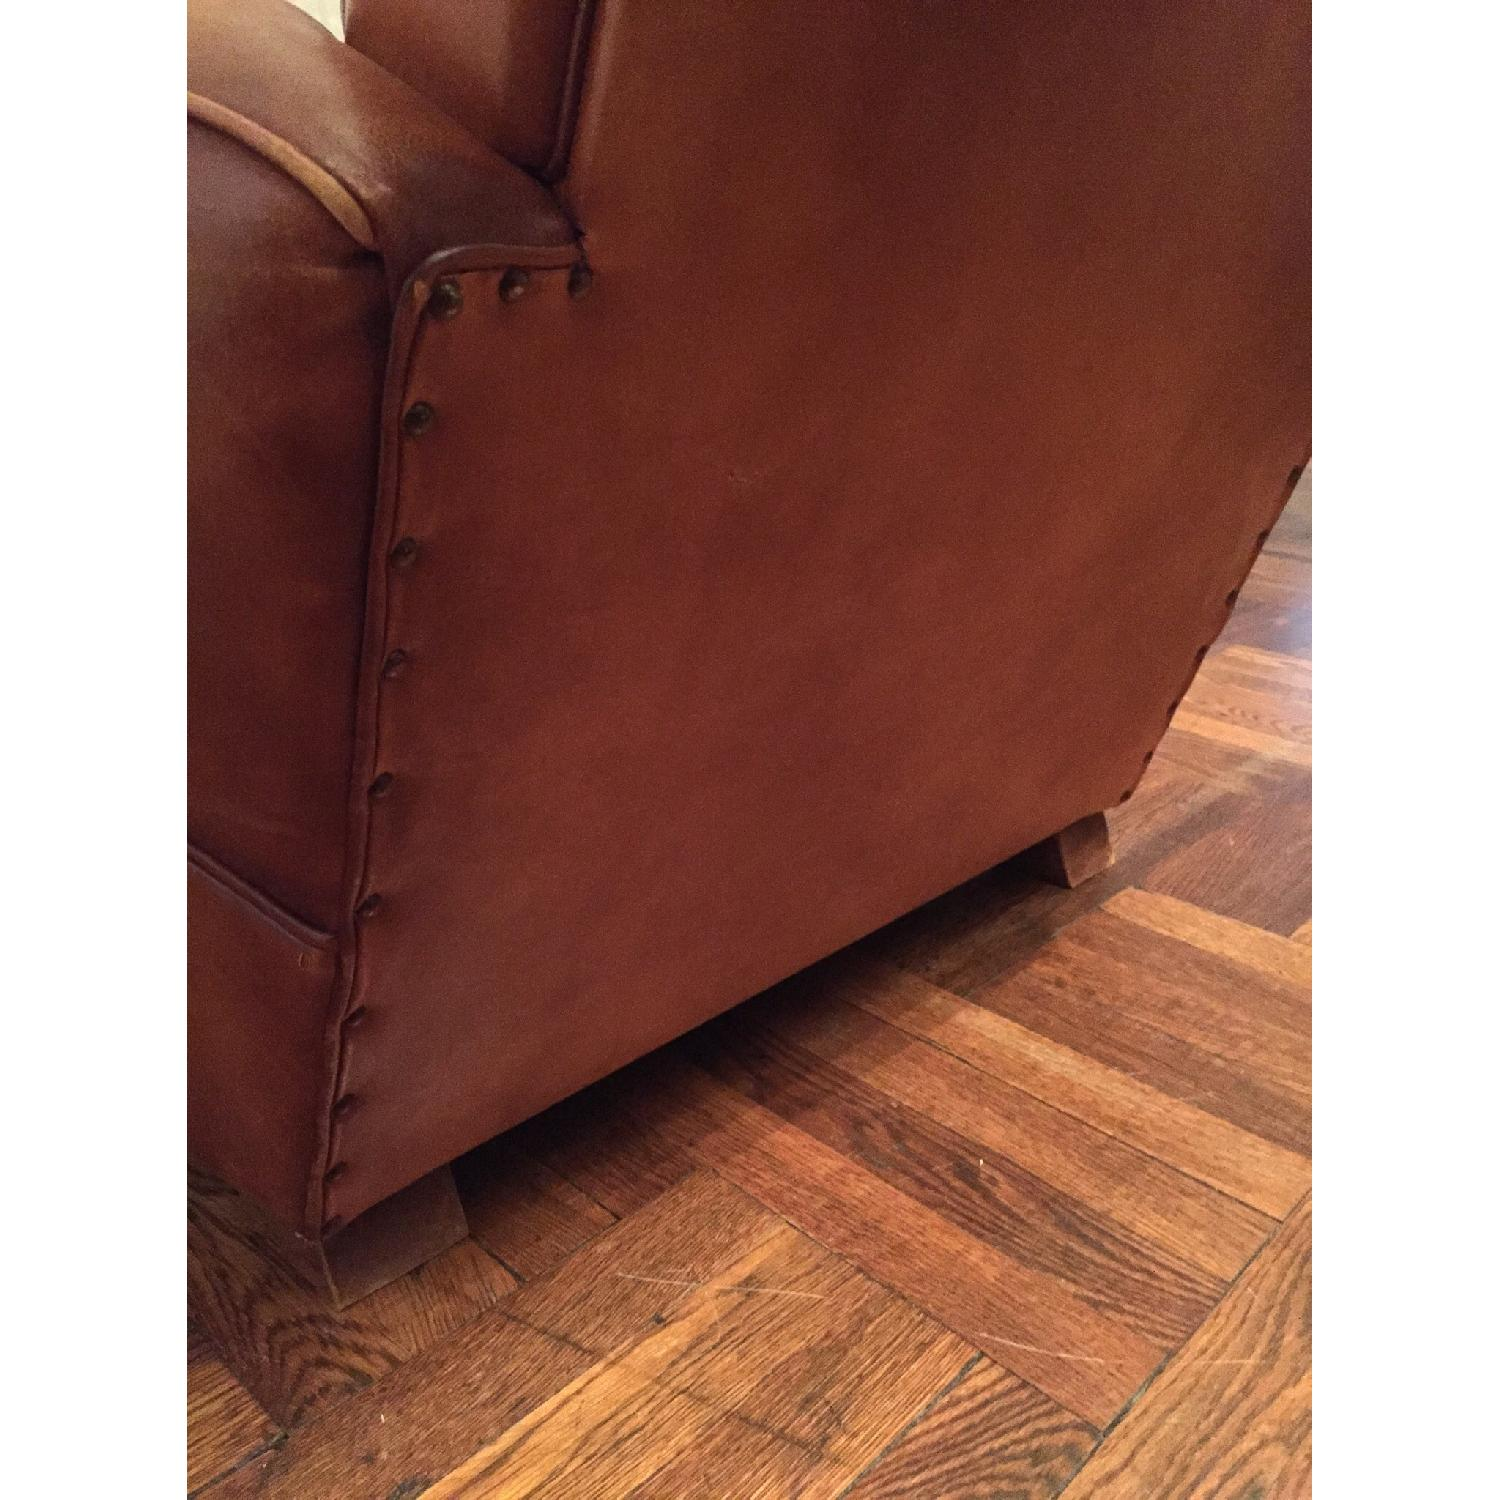 Portico Leather Club Chair - image-6